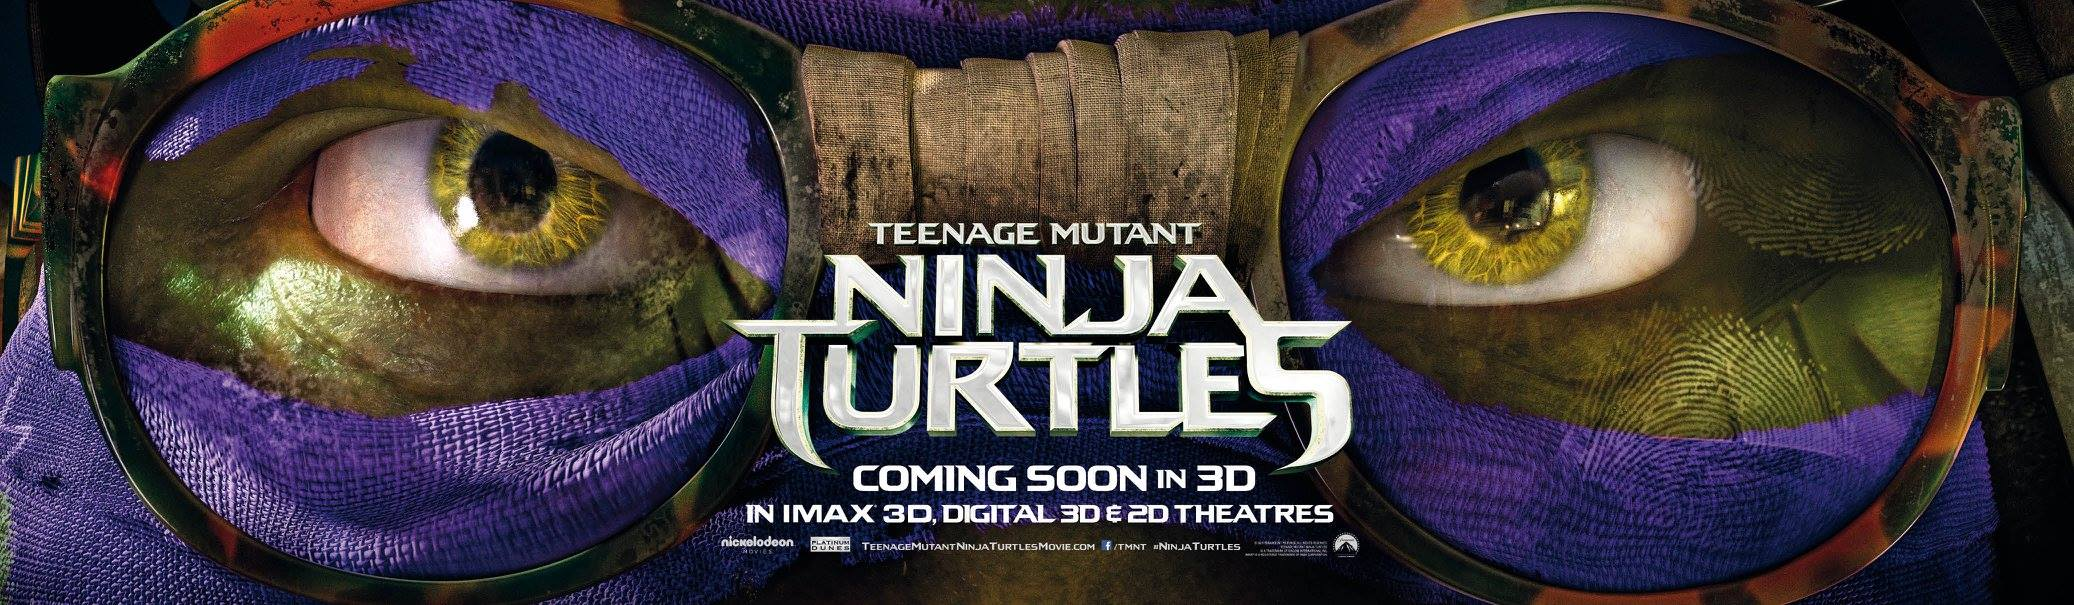 TEENAGE MUTANT NINJA TURTLES-Official Poster Banner PROMO XLG-04AGOSTO2014-04